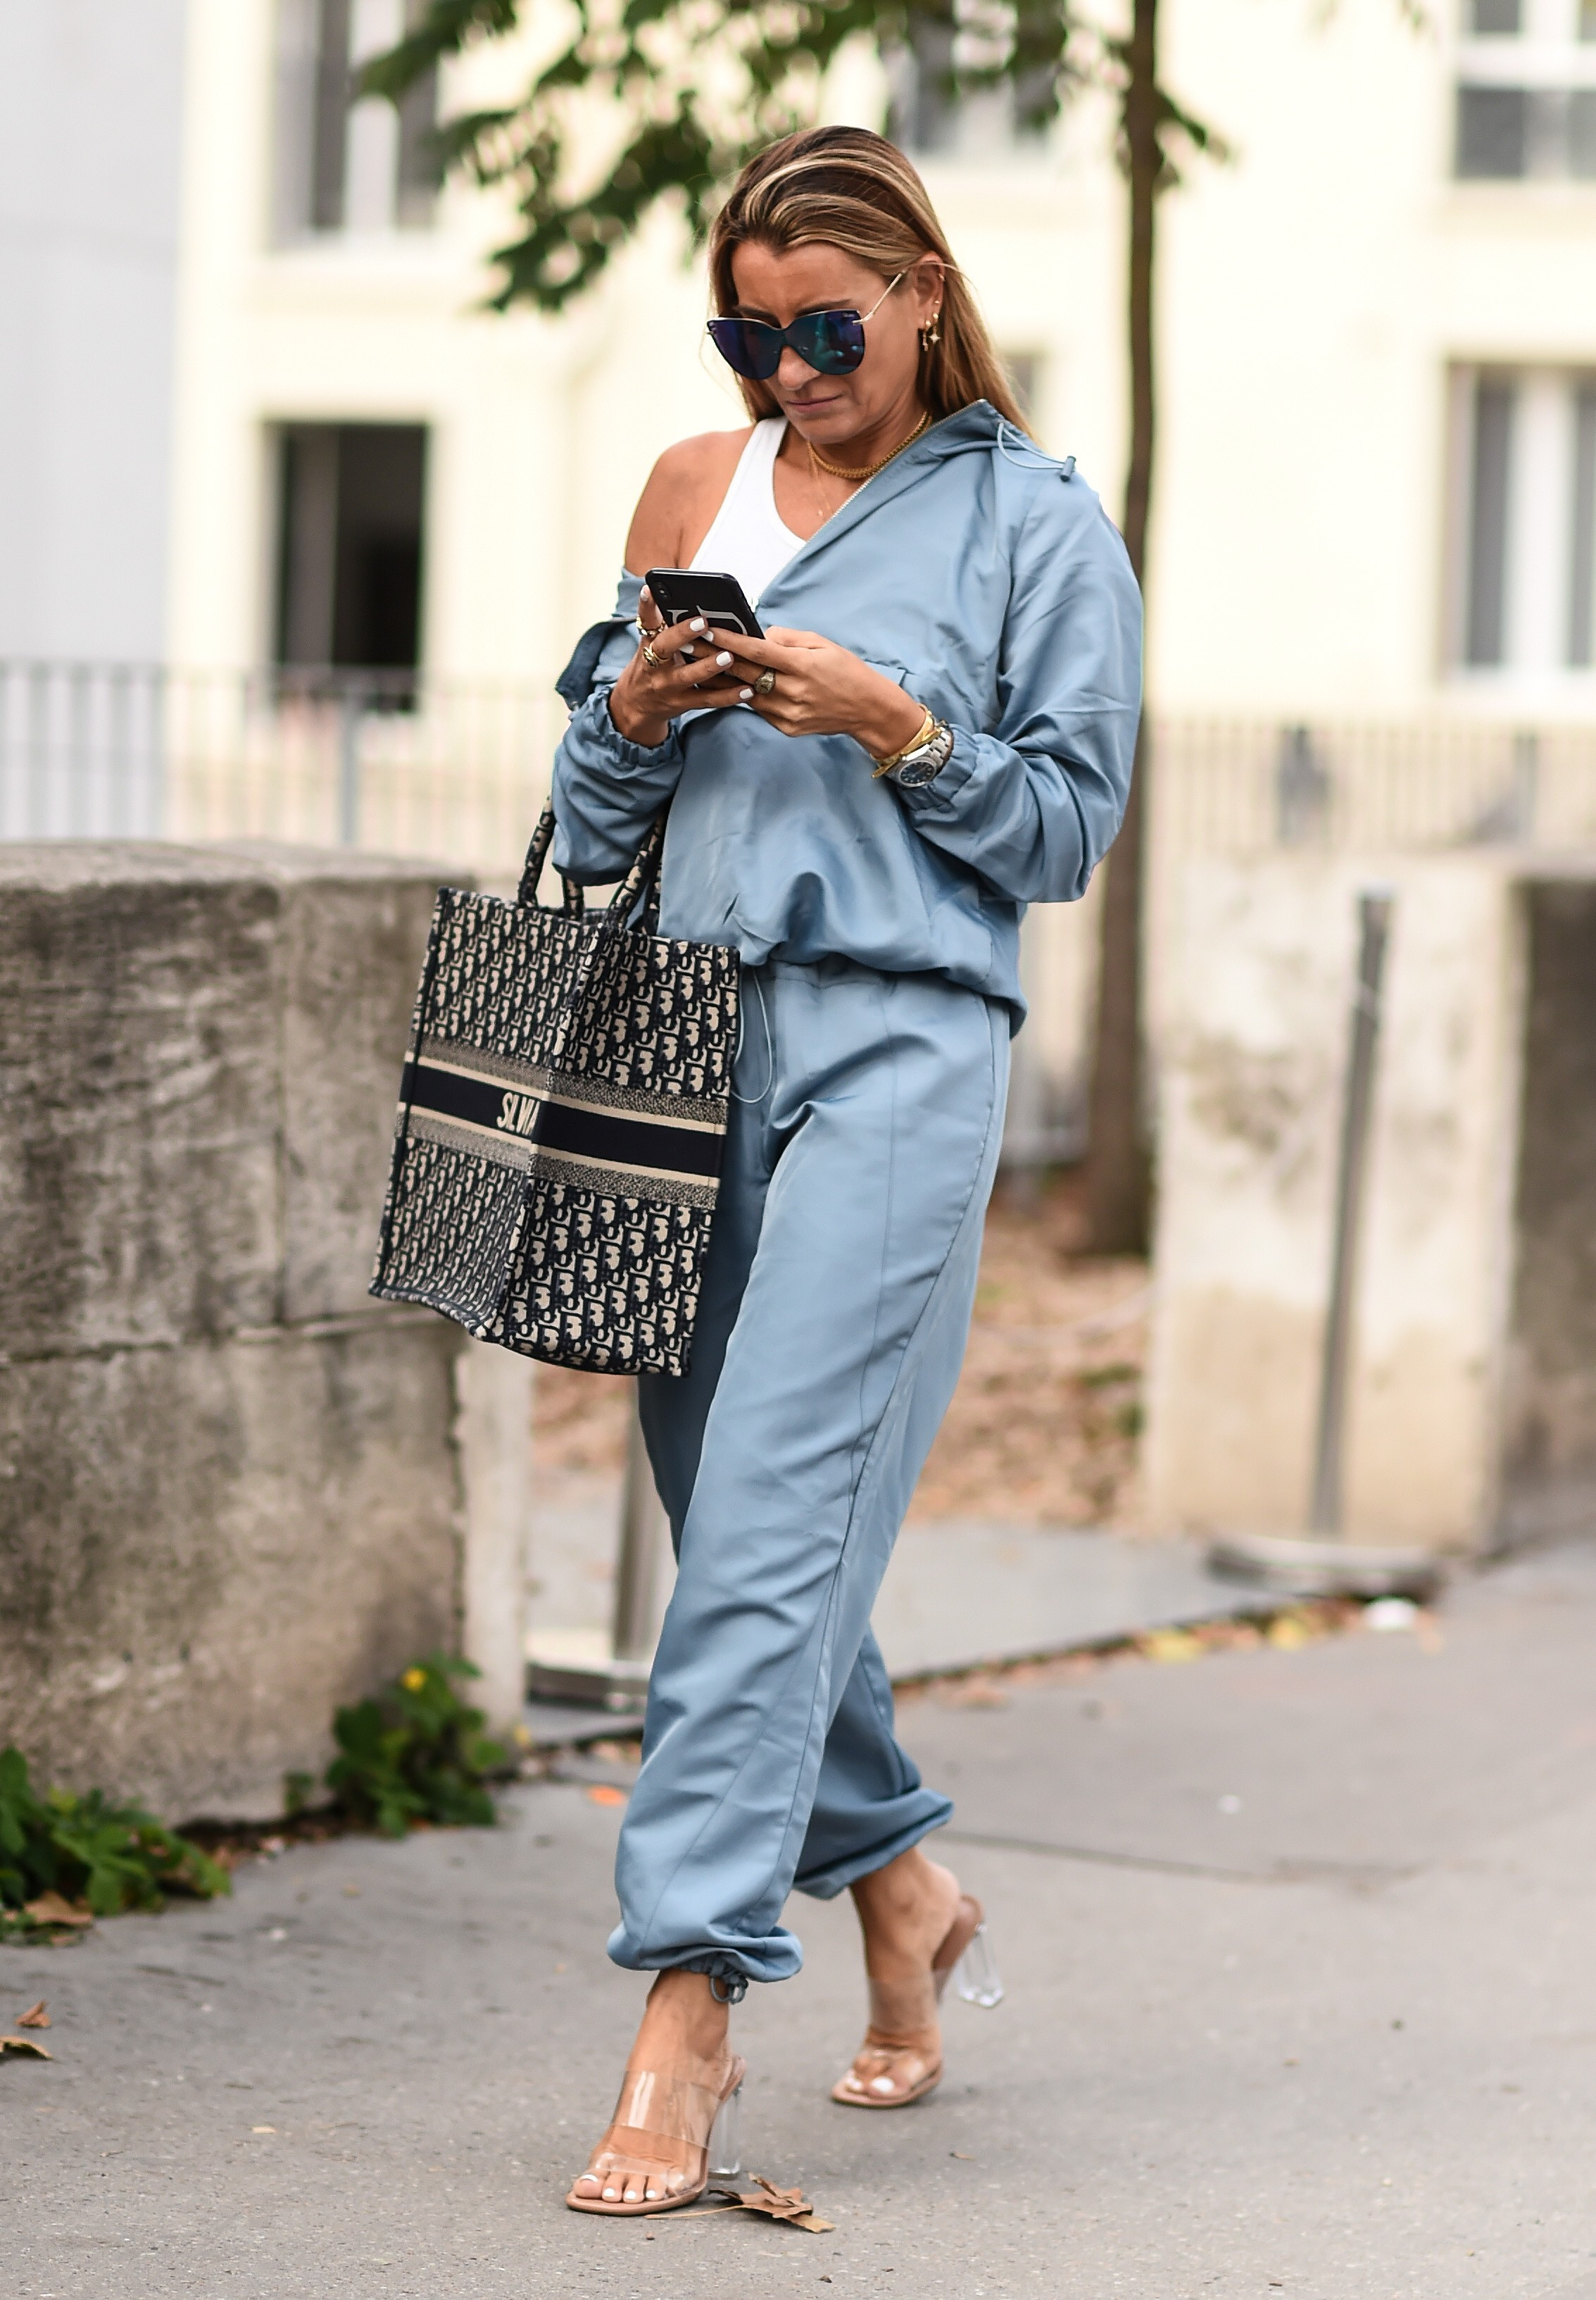 PARIS, FRANCE - SEPTEMBER 28:  A guest is seen wearing a blue one piece outfit and black and white bag outside the Haider Ackermann show during Paris Fashion Week SS20 on September 28, 2019 in Paris, France. (Photo by Daniel Zuchnik/Getty Images) (Foto: Getty Images)